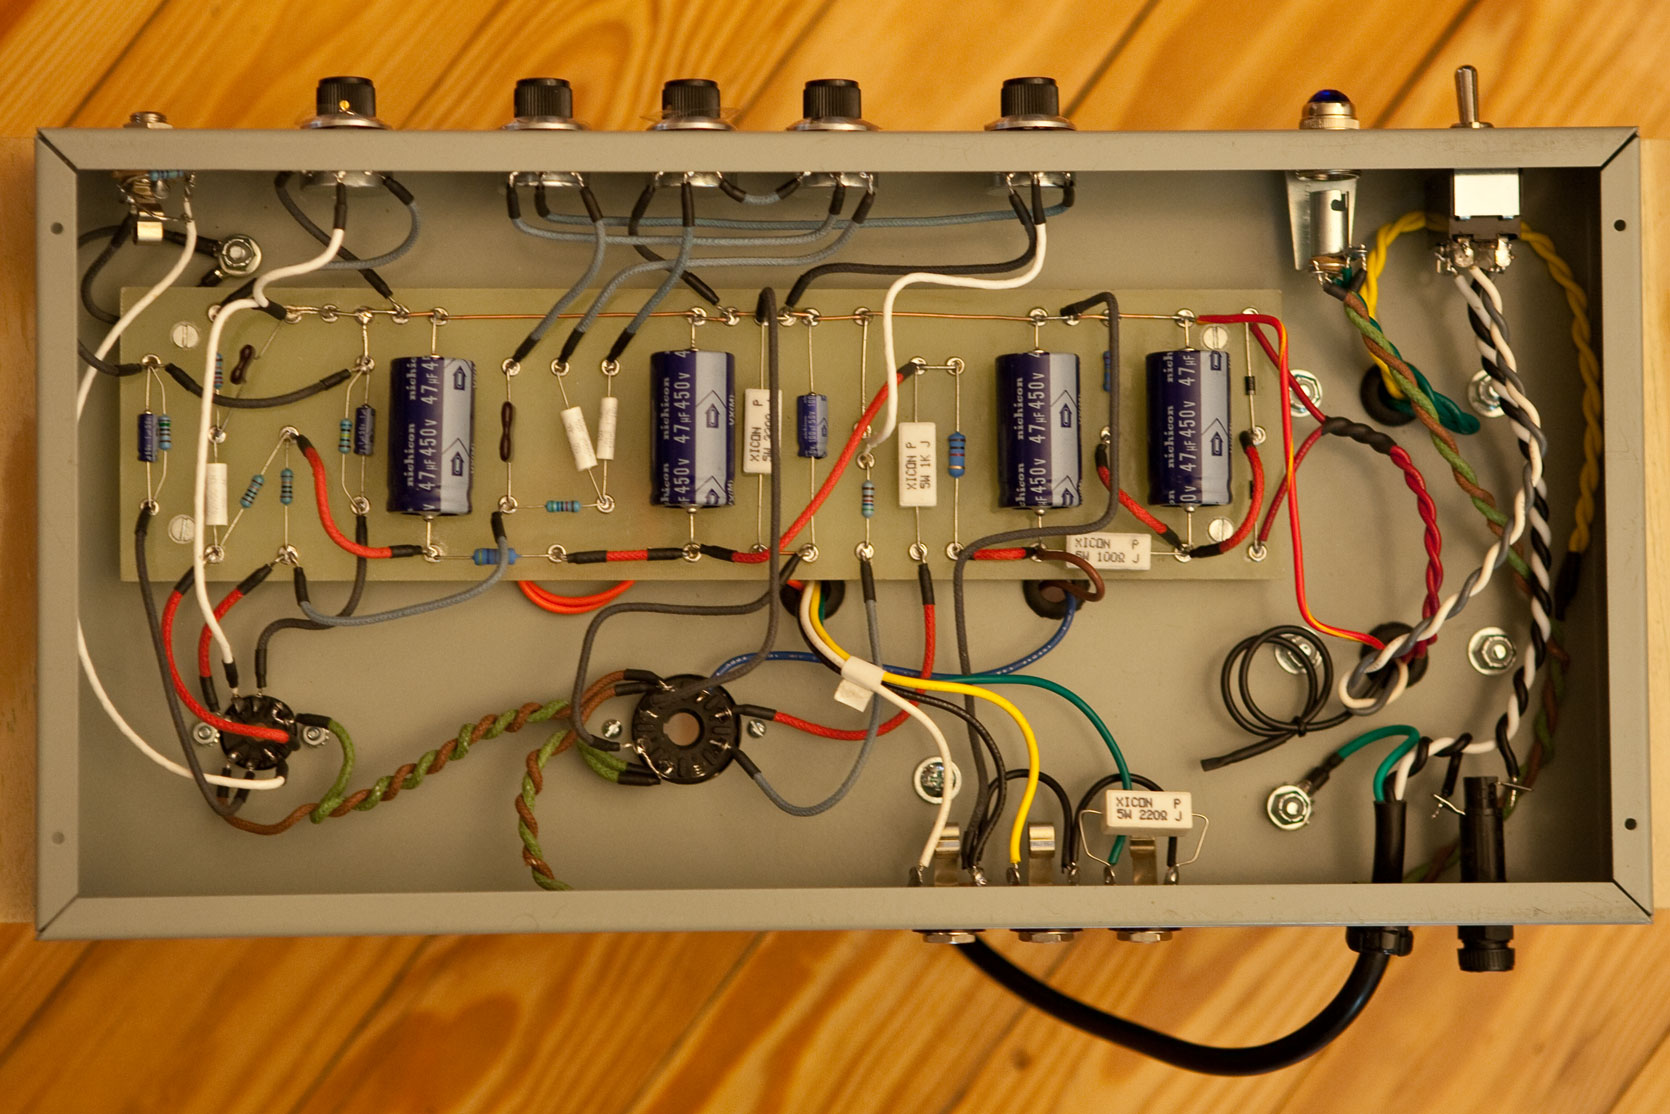 tube guitar amp AX84 P1ex DIY project photos, notes and ...